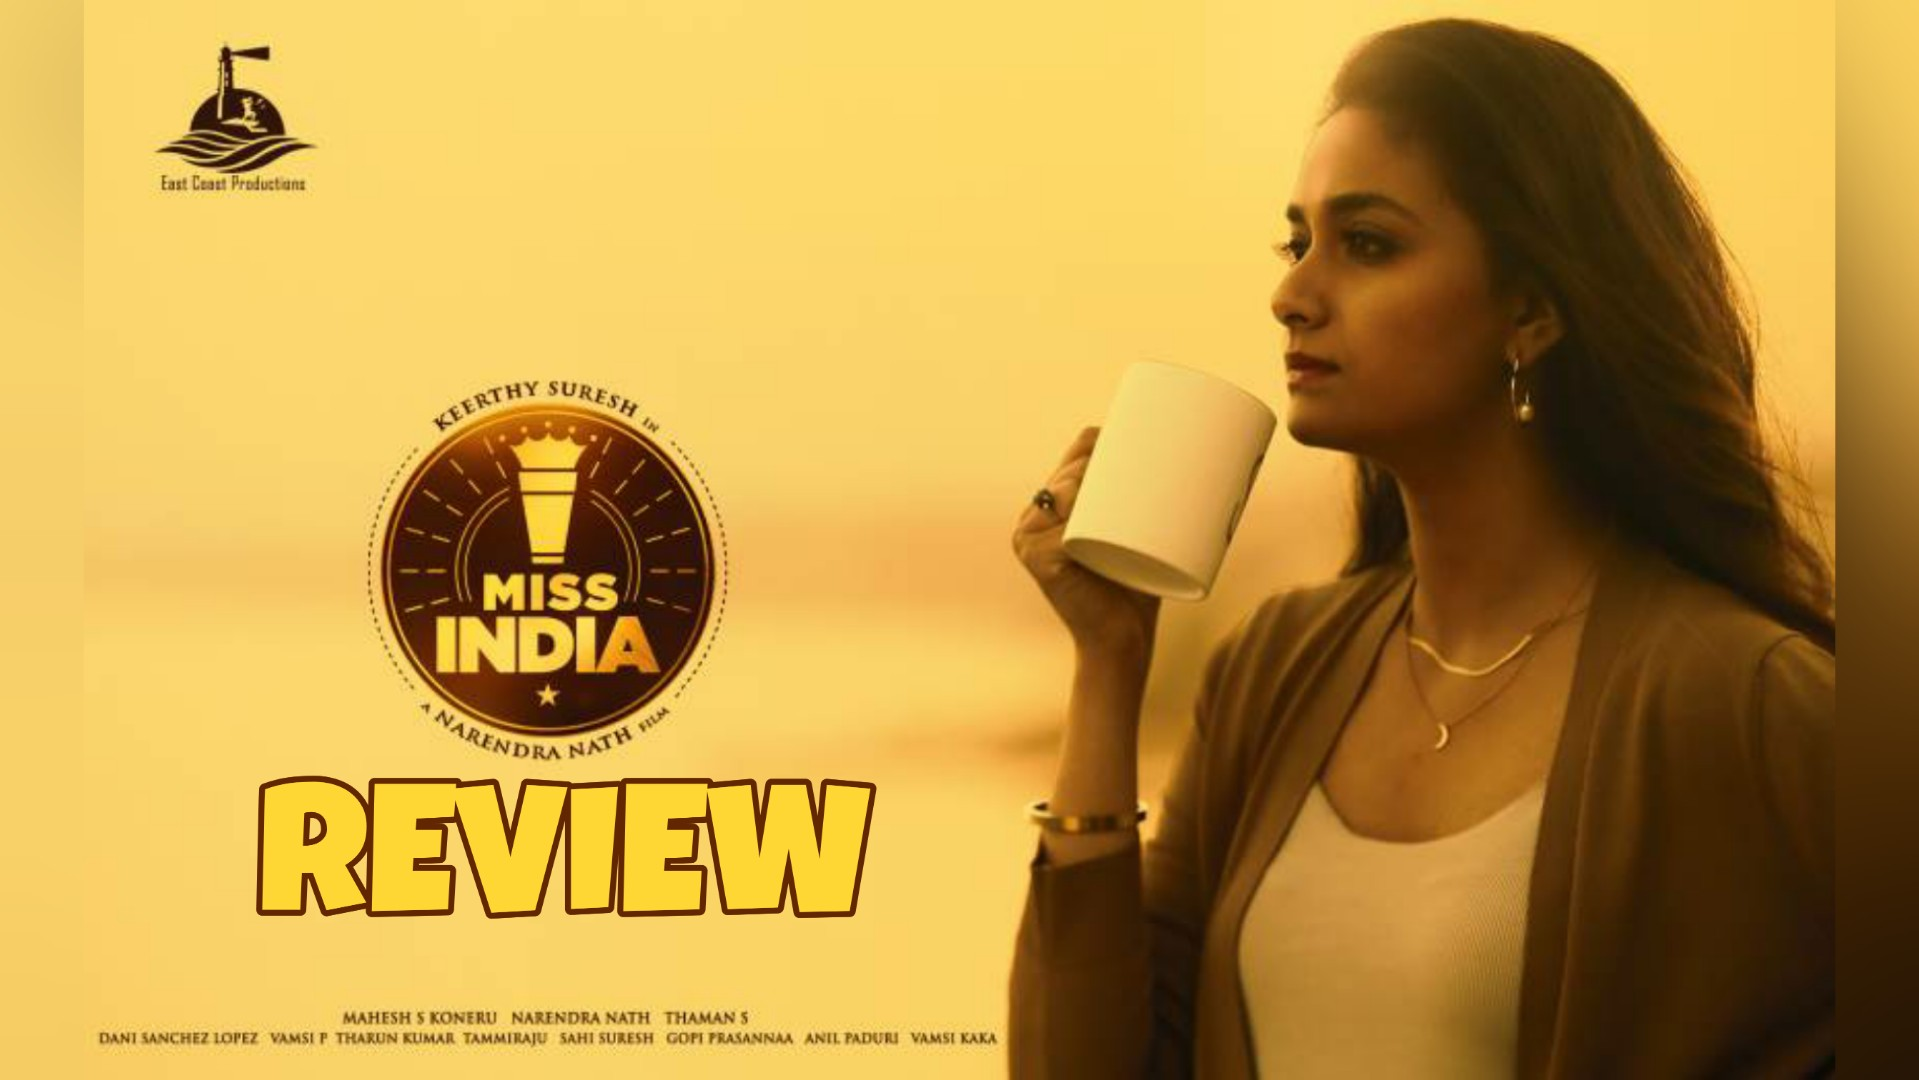 Miss India movie review and cast 2020